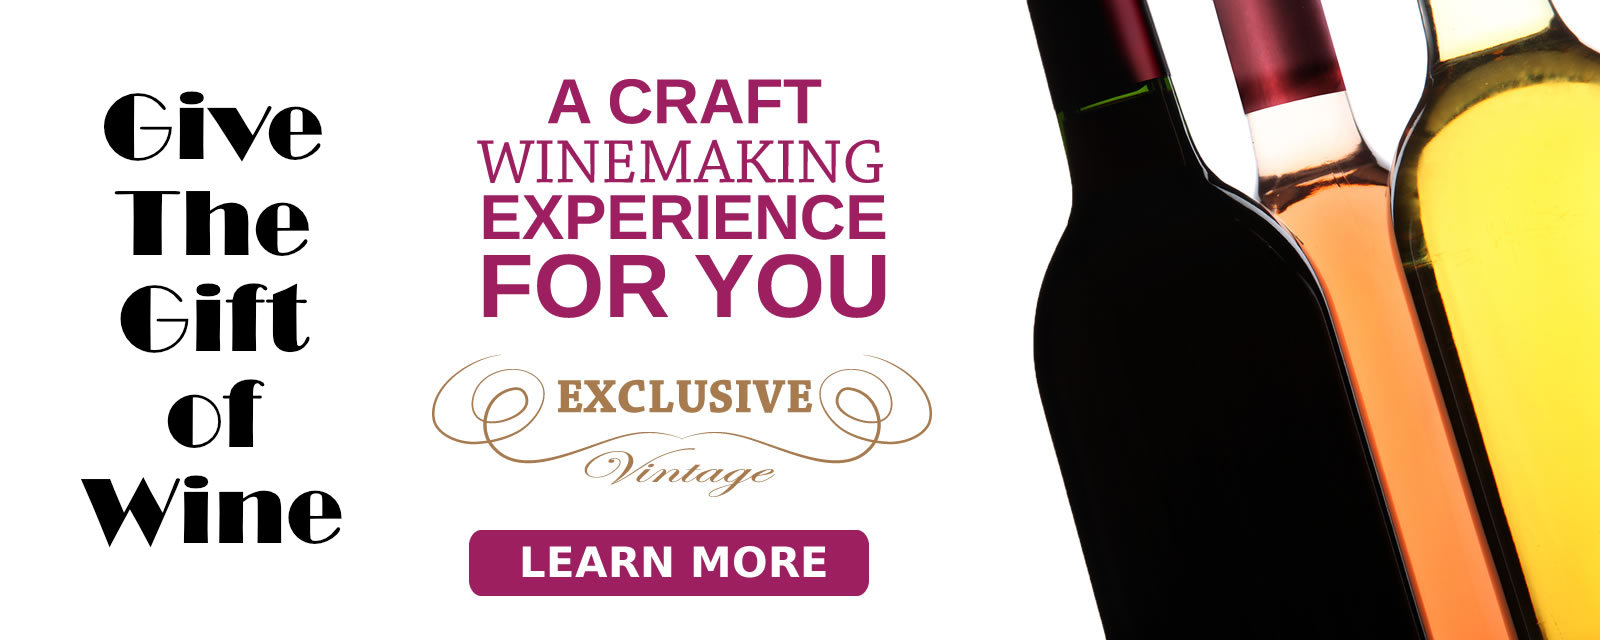 Give a Craft Winemaking Experience this Christmas